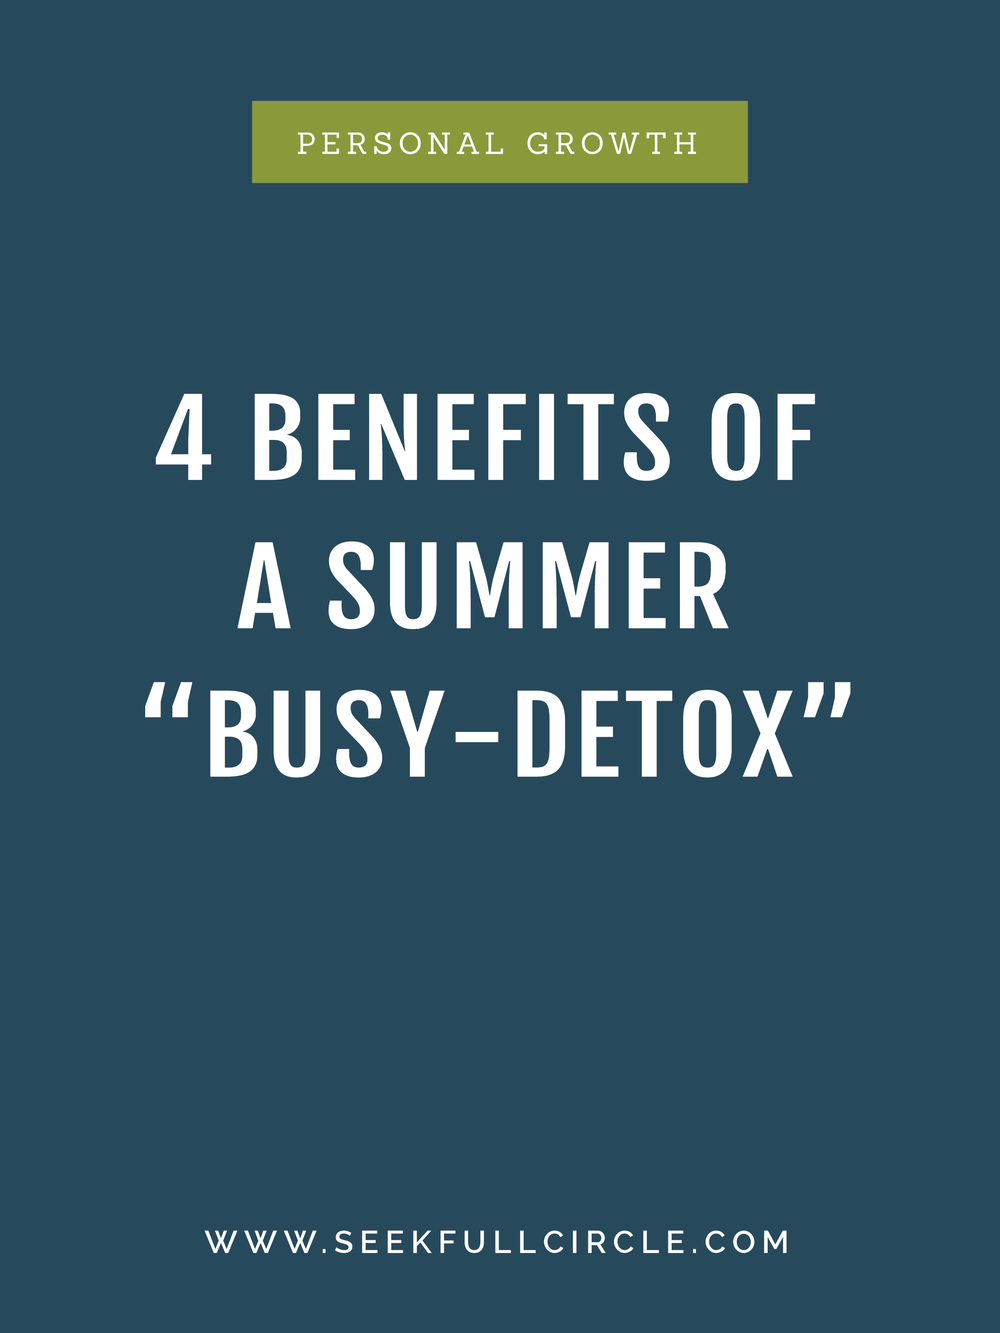 4 Benefits of a Summer Busy-Detox